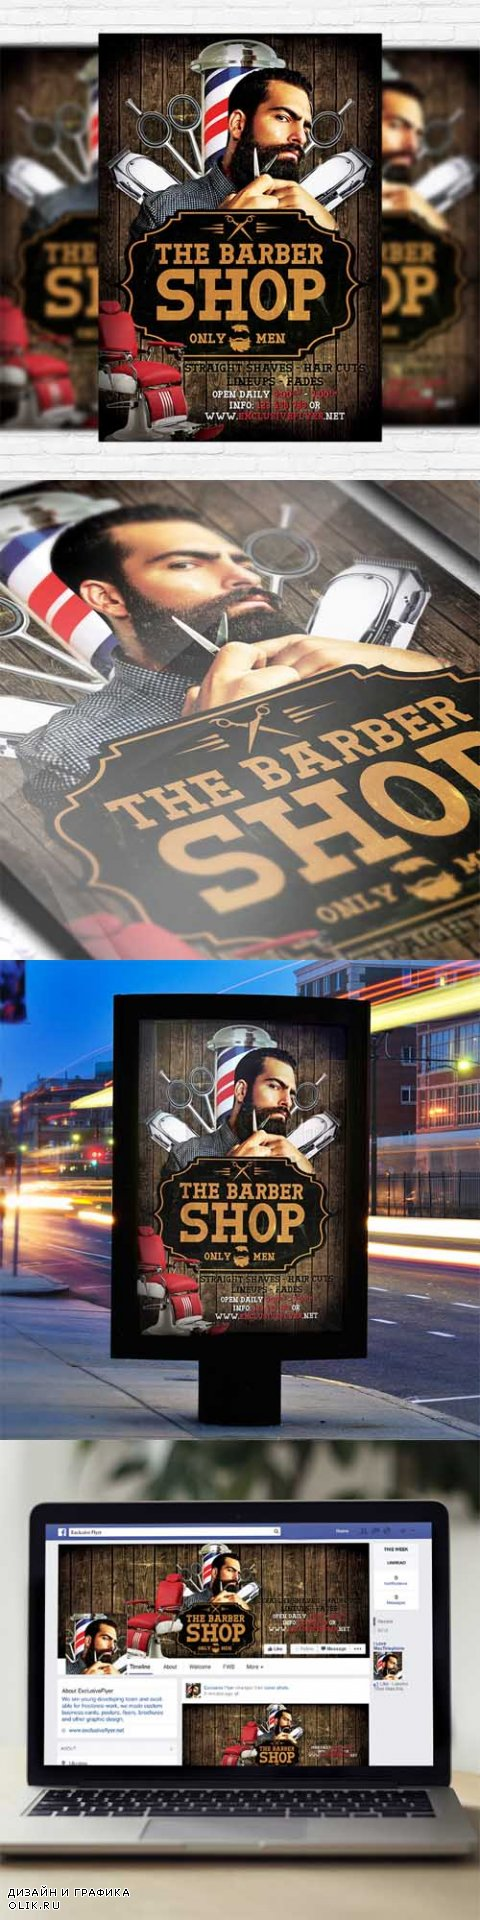 Flyer Template - Barber Shop + Facebook Cover